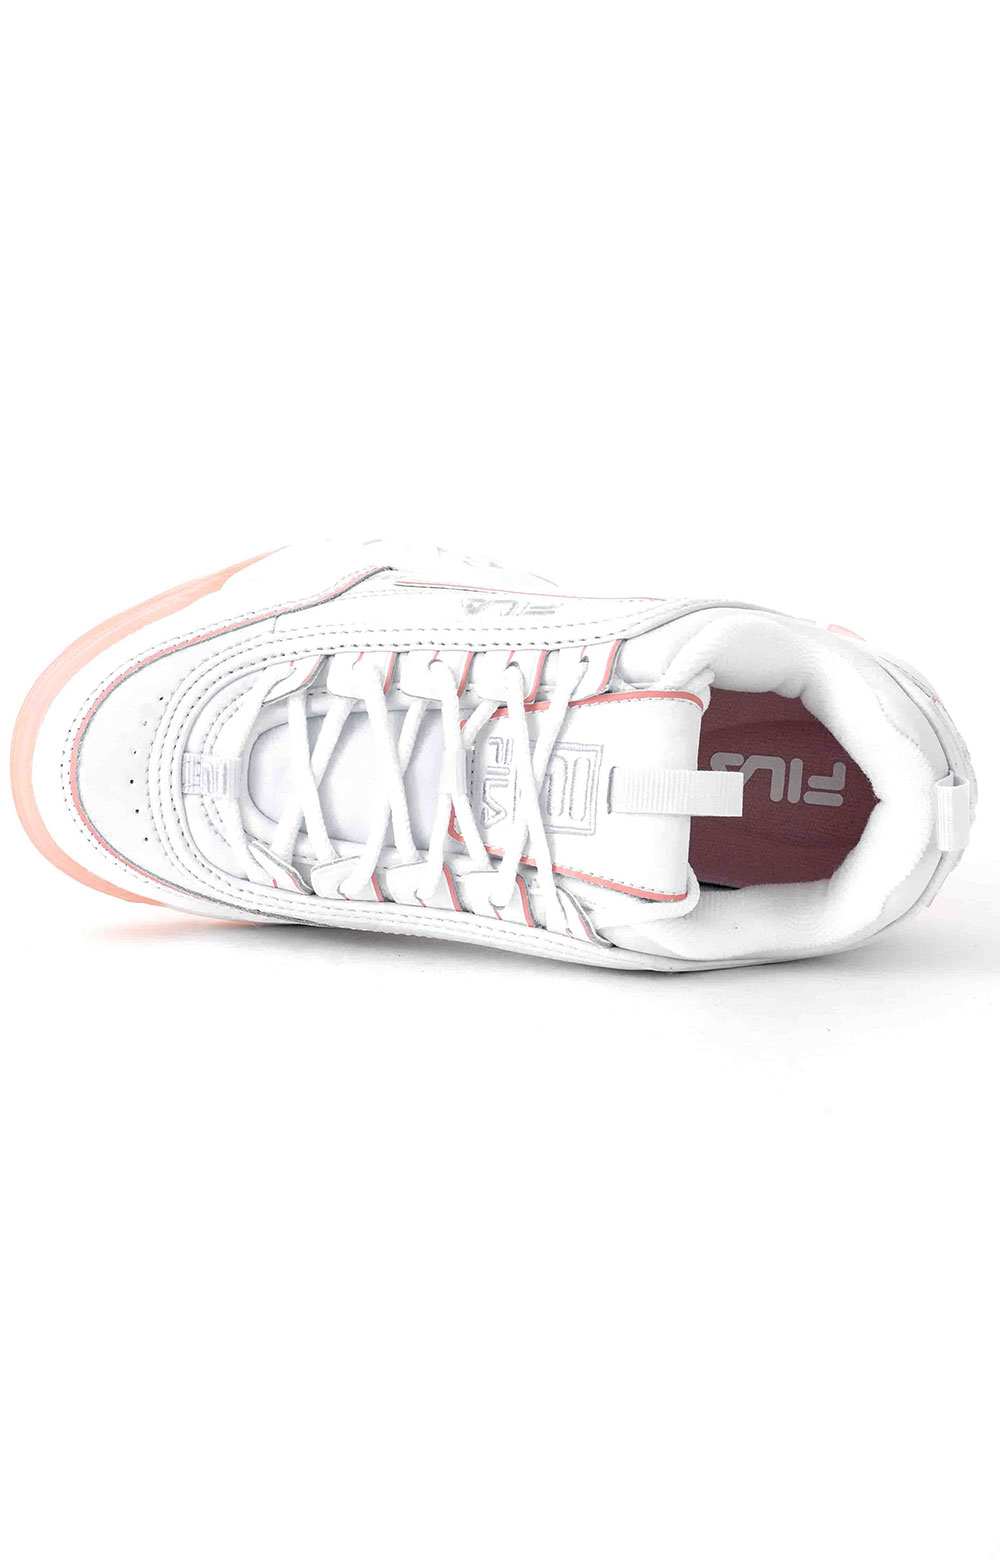 Disruptor II Ice Shoes - White/Pink 2